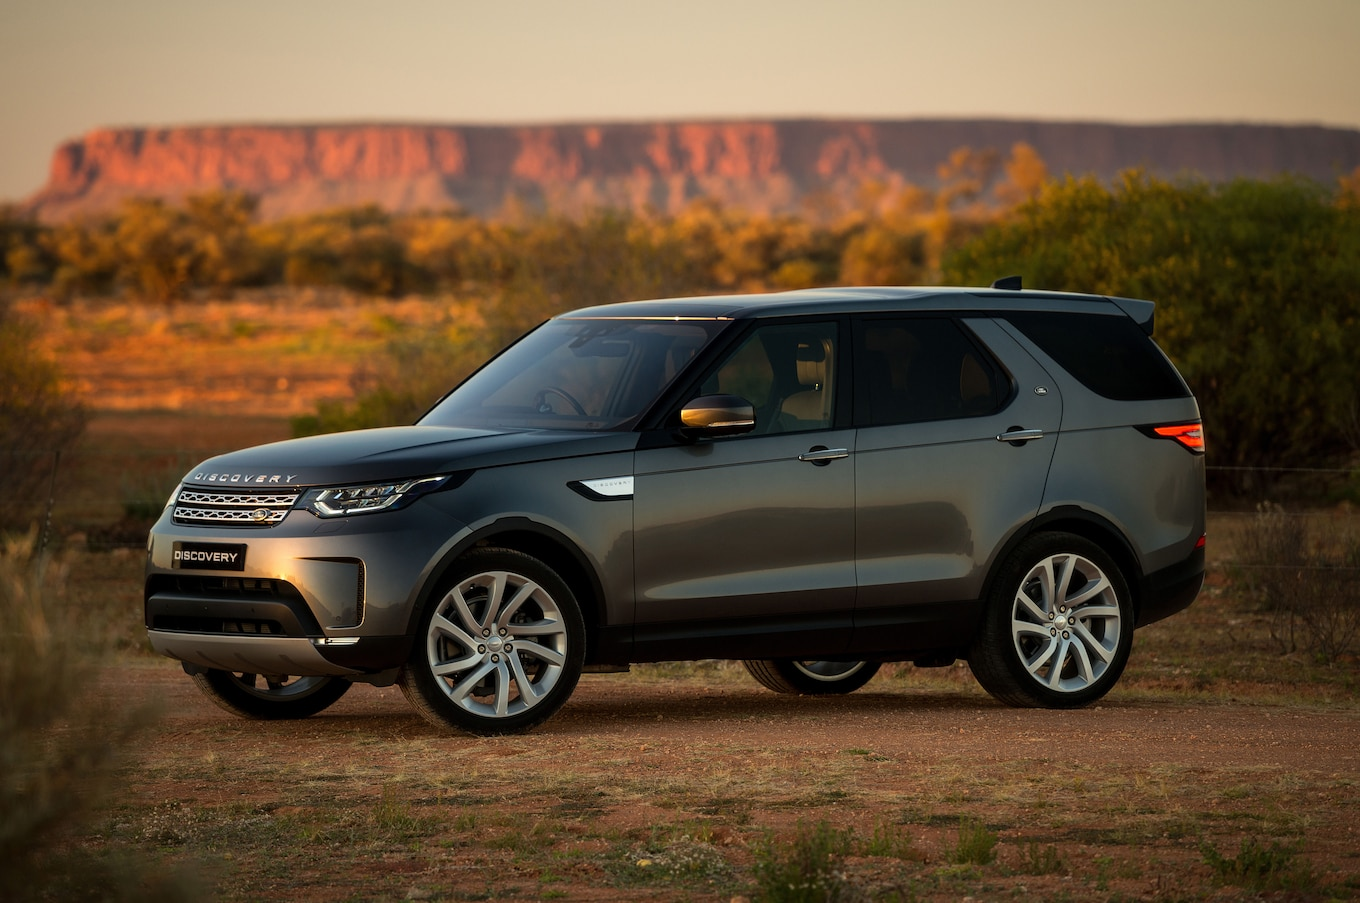 Land Rover Discovery Reviews Research New & Used Models